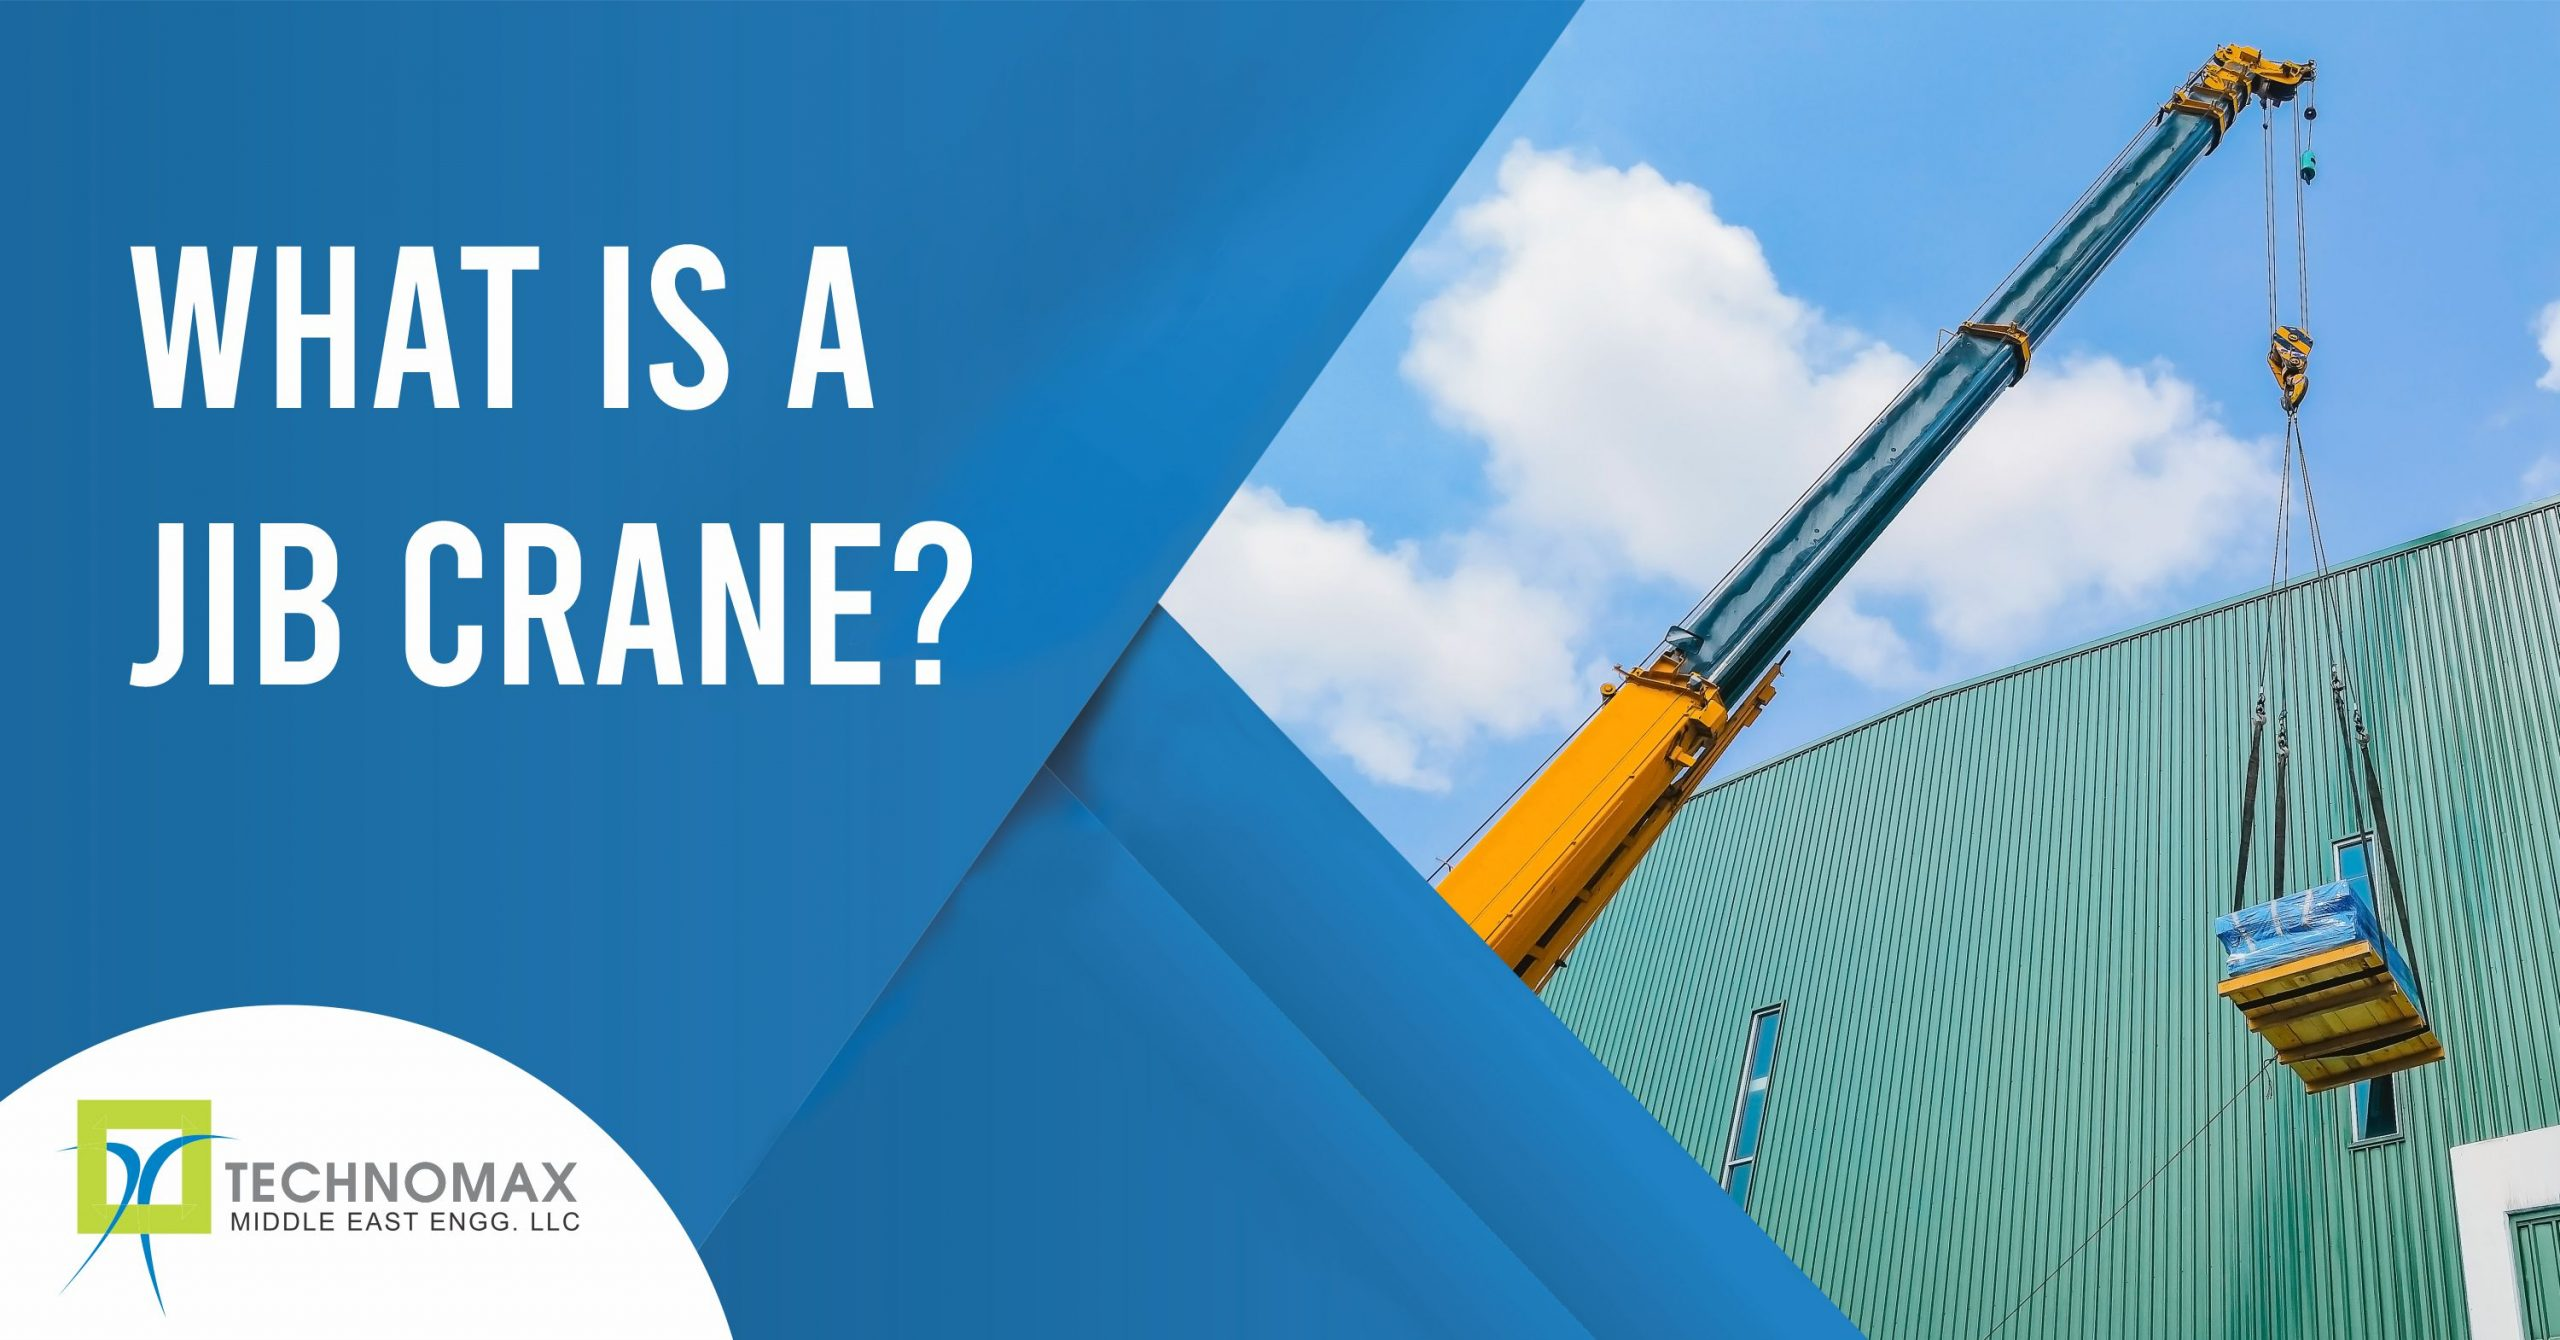 What Is a Jib Crane